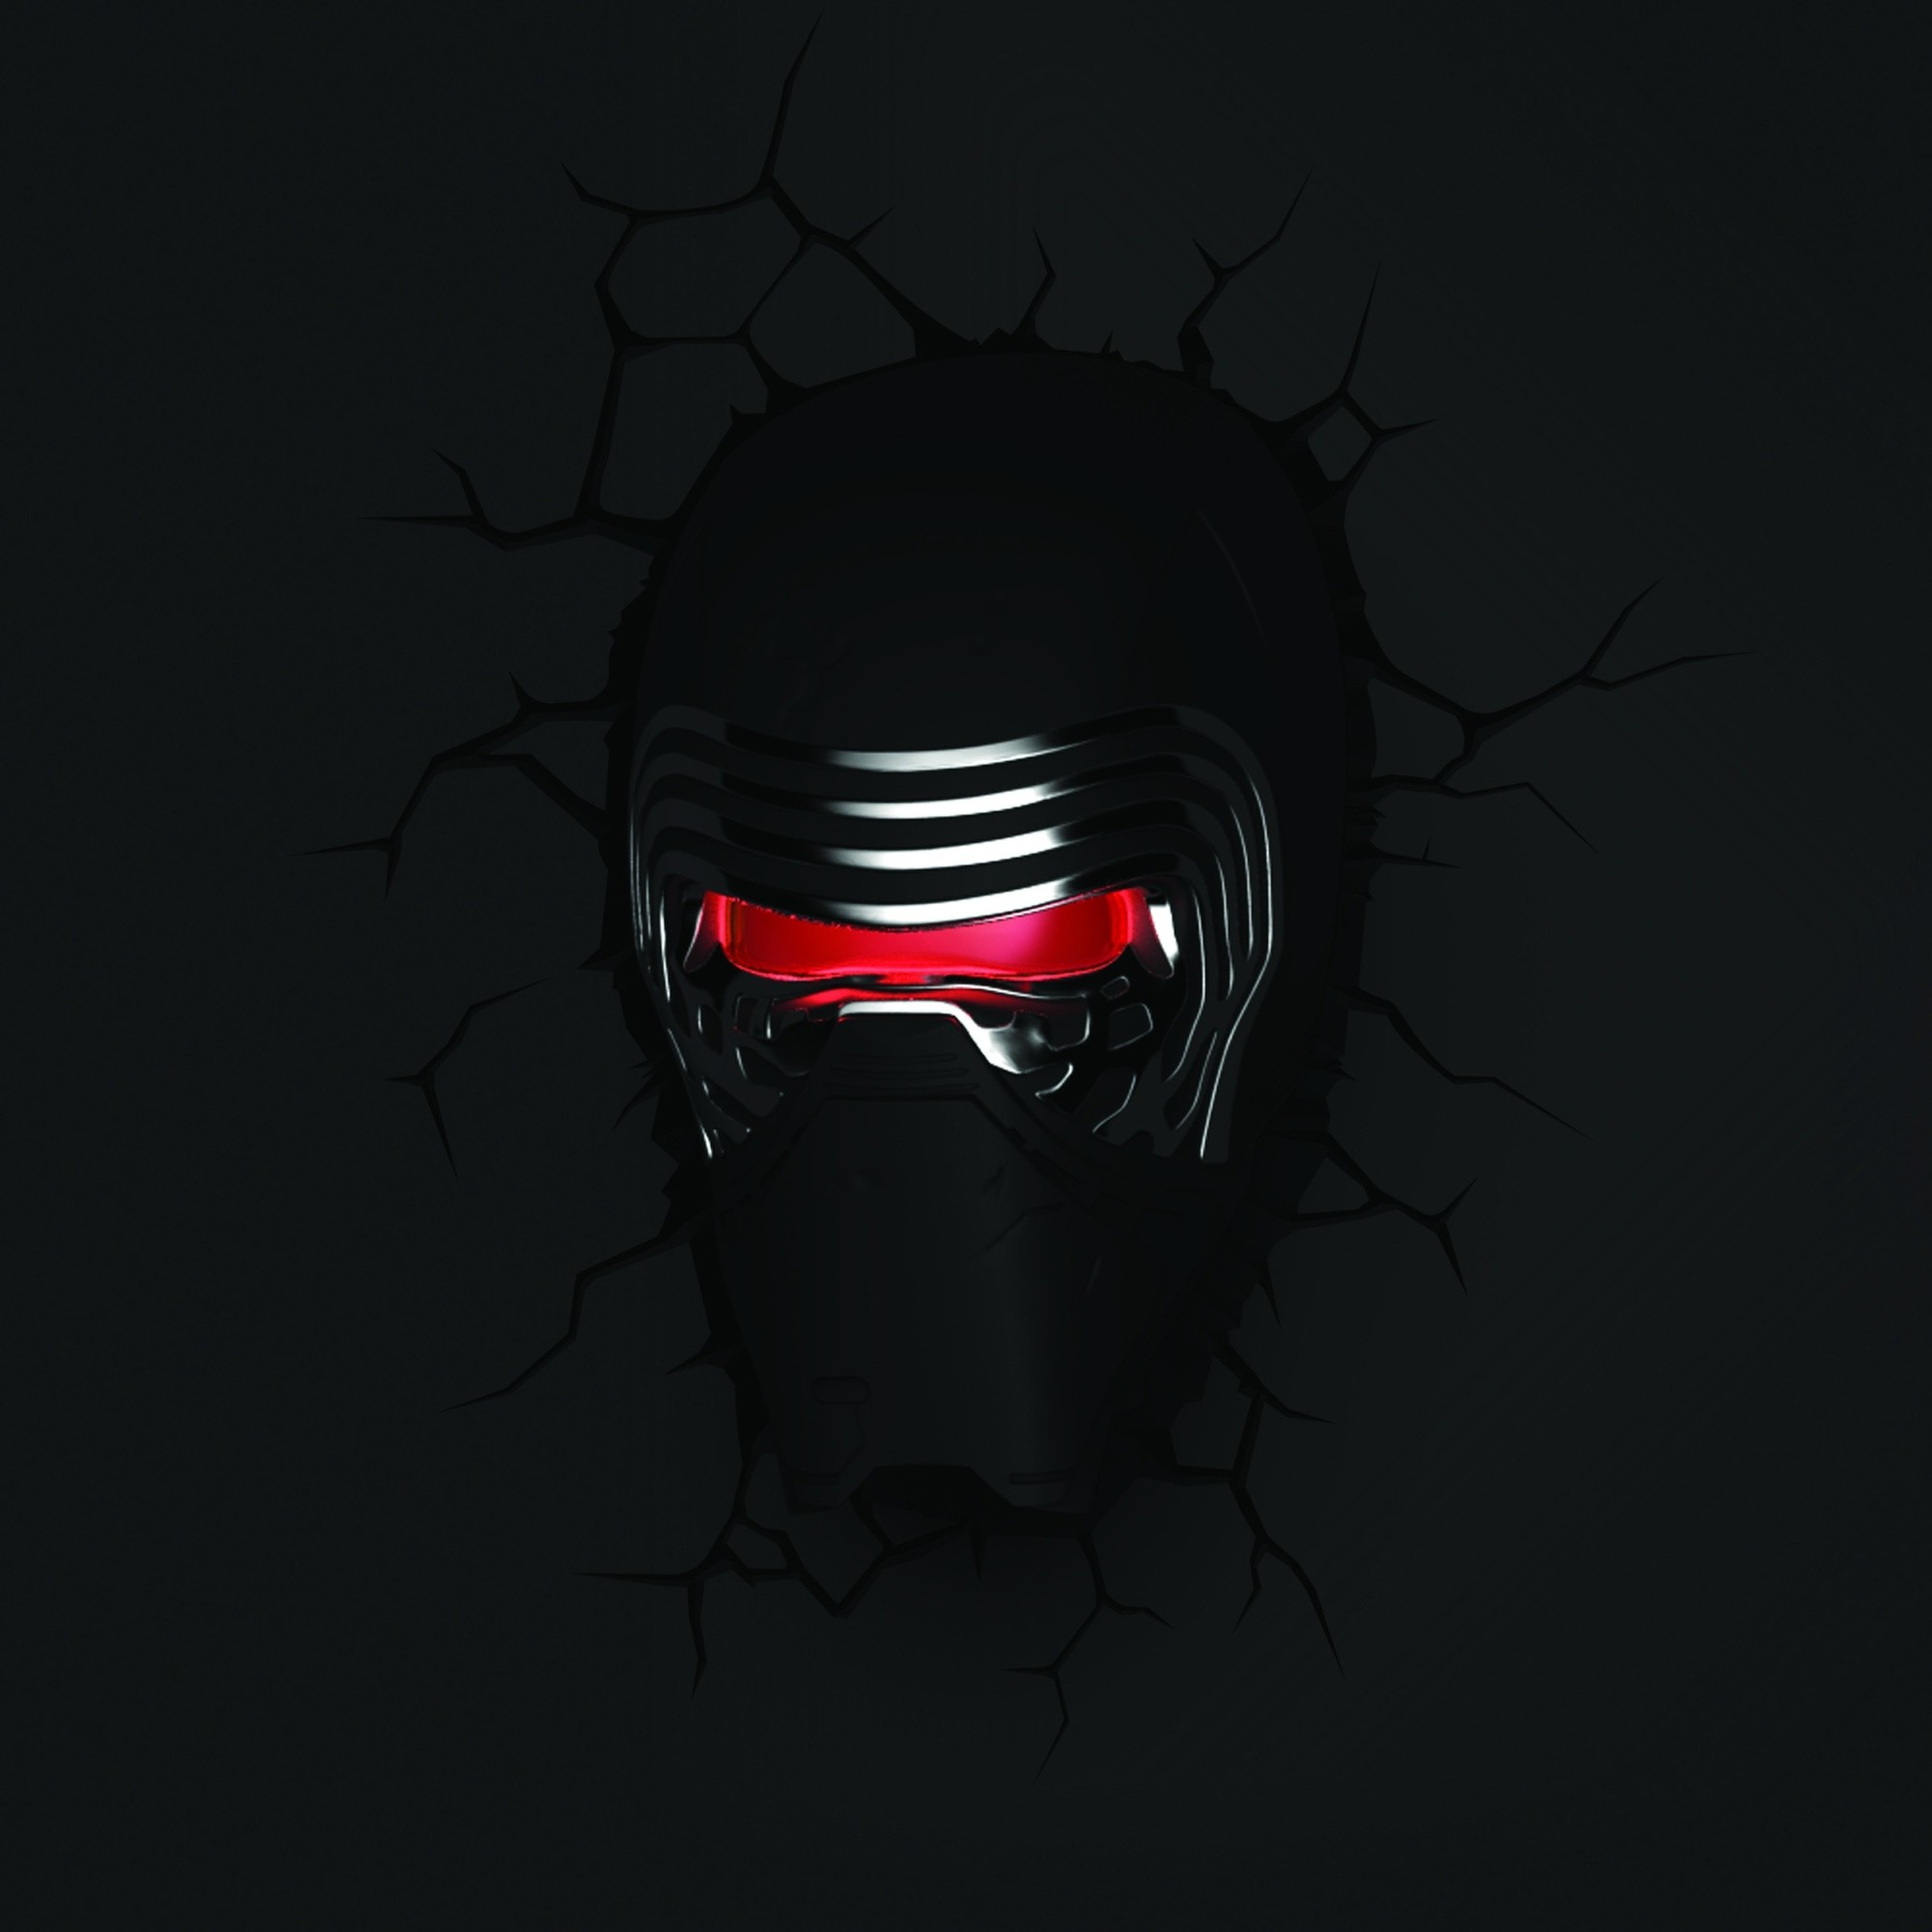 Wall Mounted Night Lights : Star Wars 3D Deco LED Night Light FX Battery Powered Wall Mounted Kylo Ren eBay